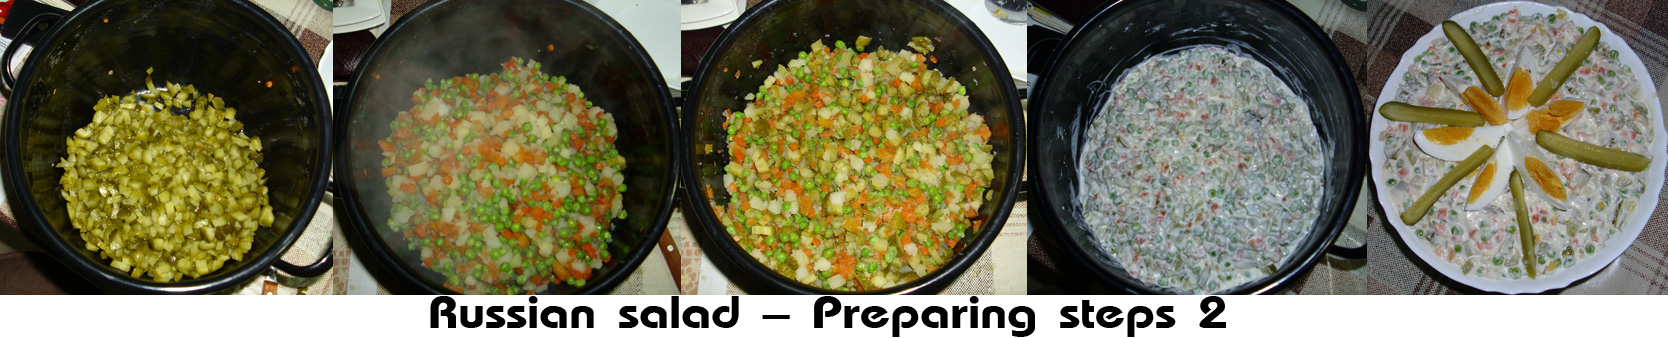 Russian salad preparing steps 2